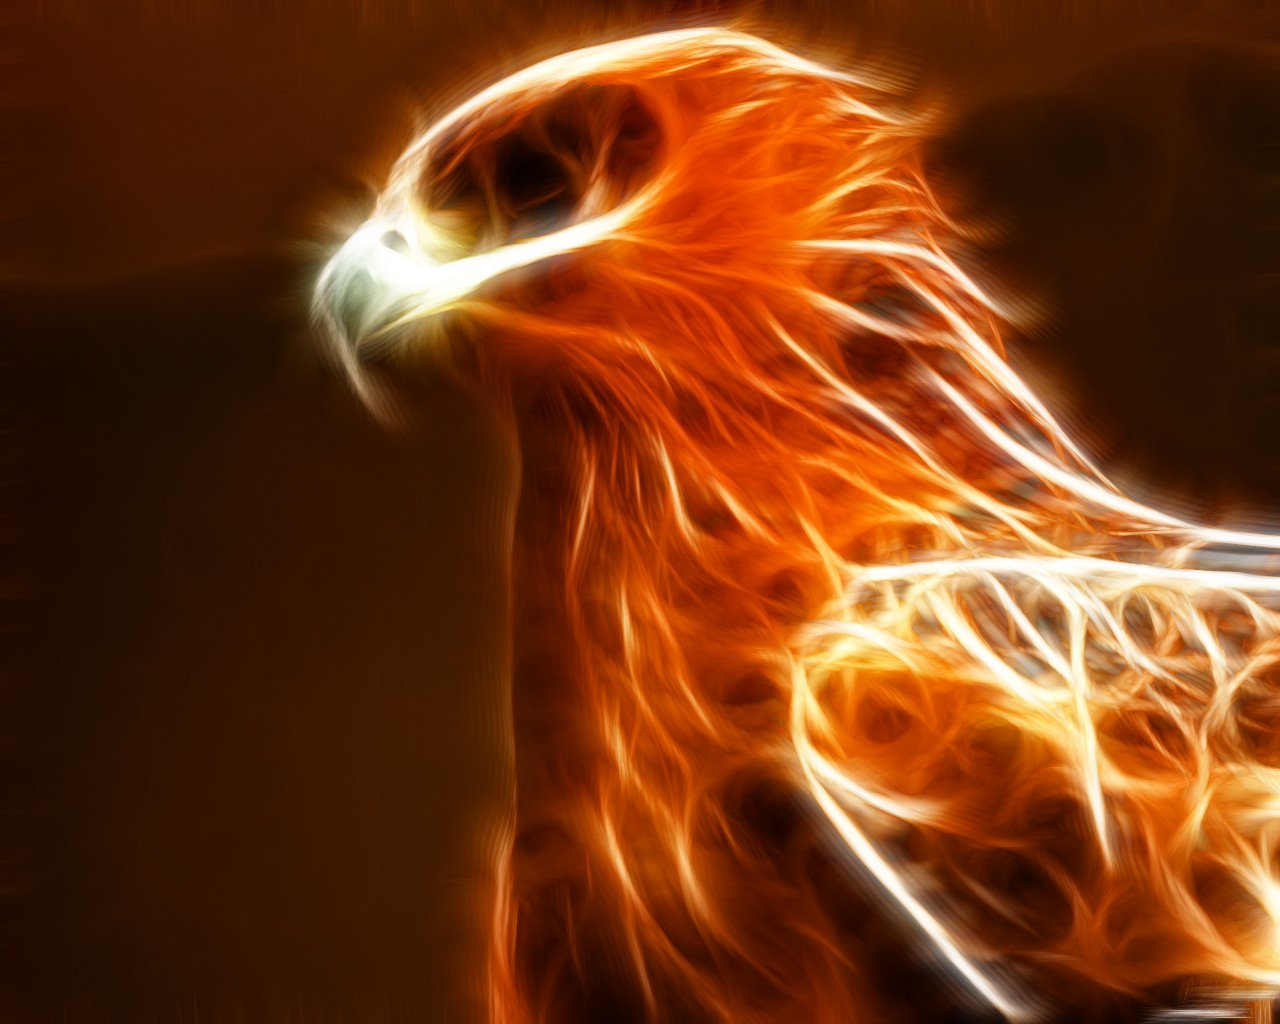 30 beautiful phoenix artworks 3d and oil paintings for inspiration 1280x1024